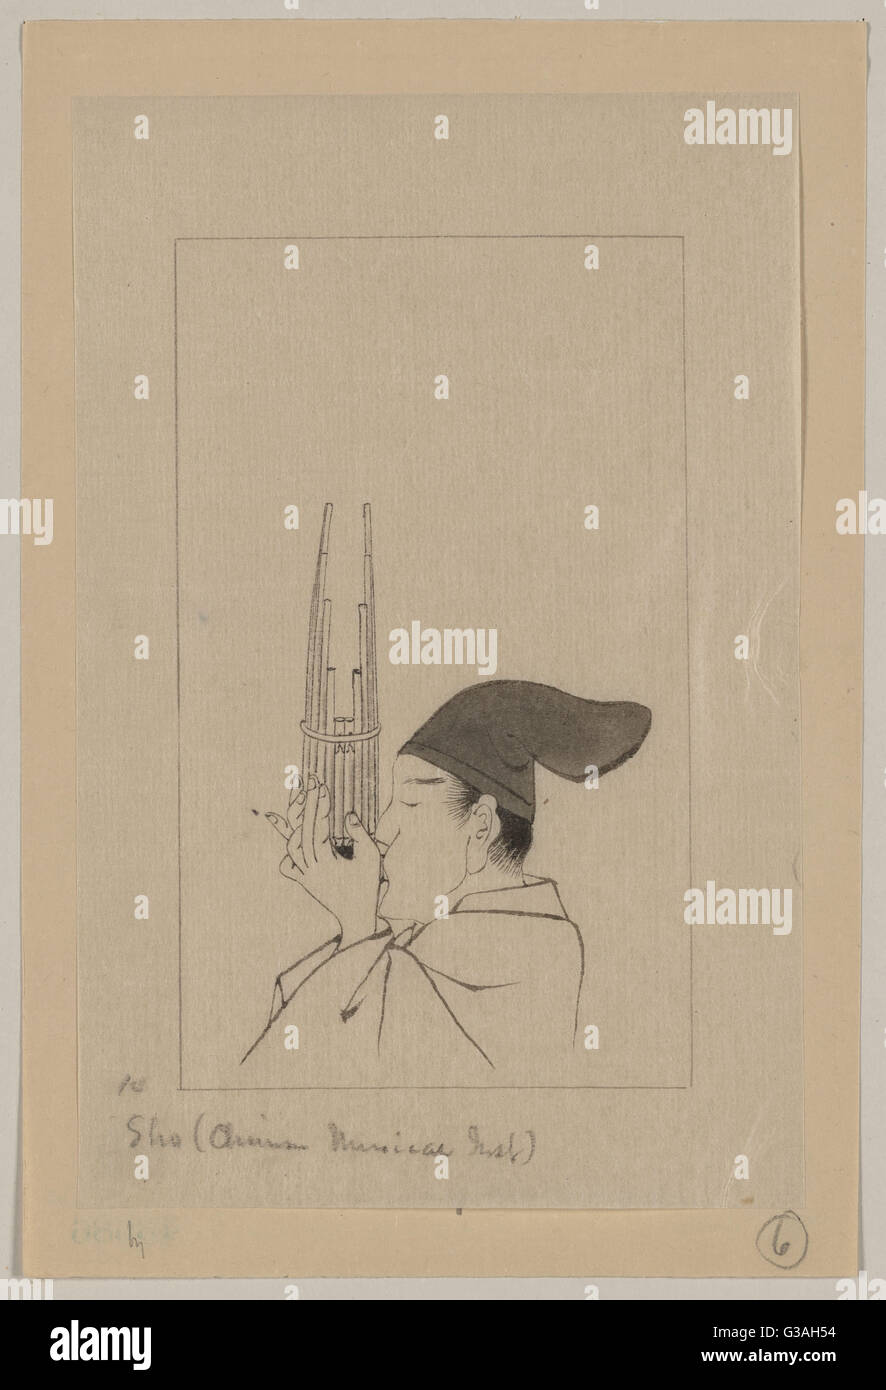 Sho (Chinese musical inst.). Drawing shows a man, head-and-shoulders, left profile, playing a sho, a panpipe-like - Stock Image